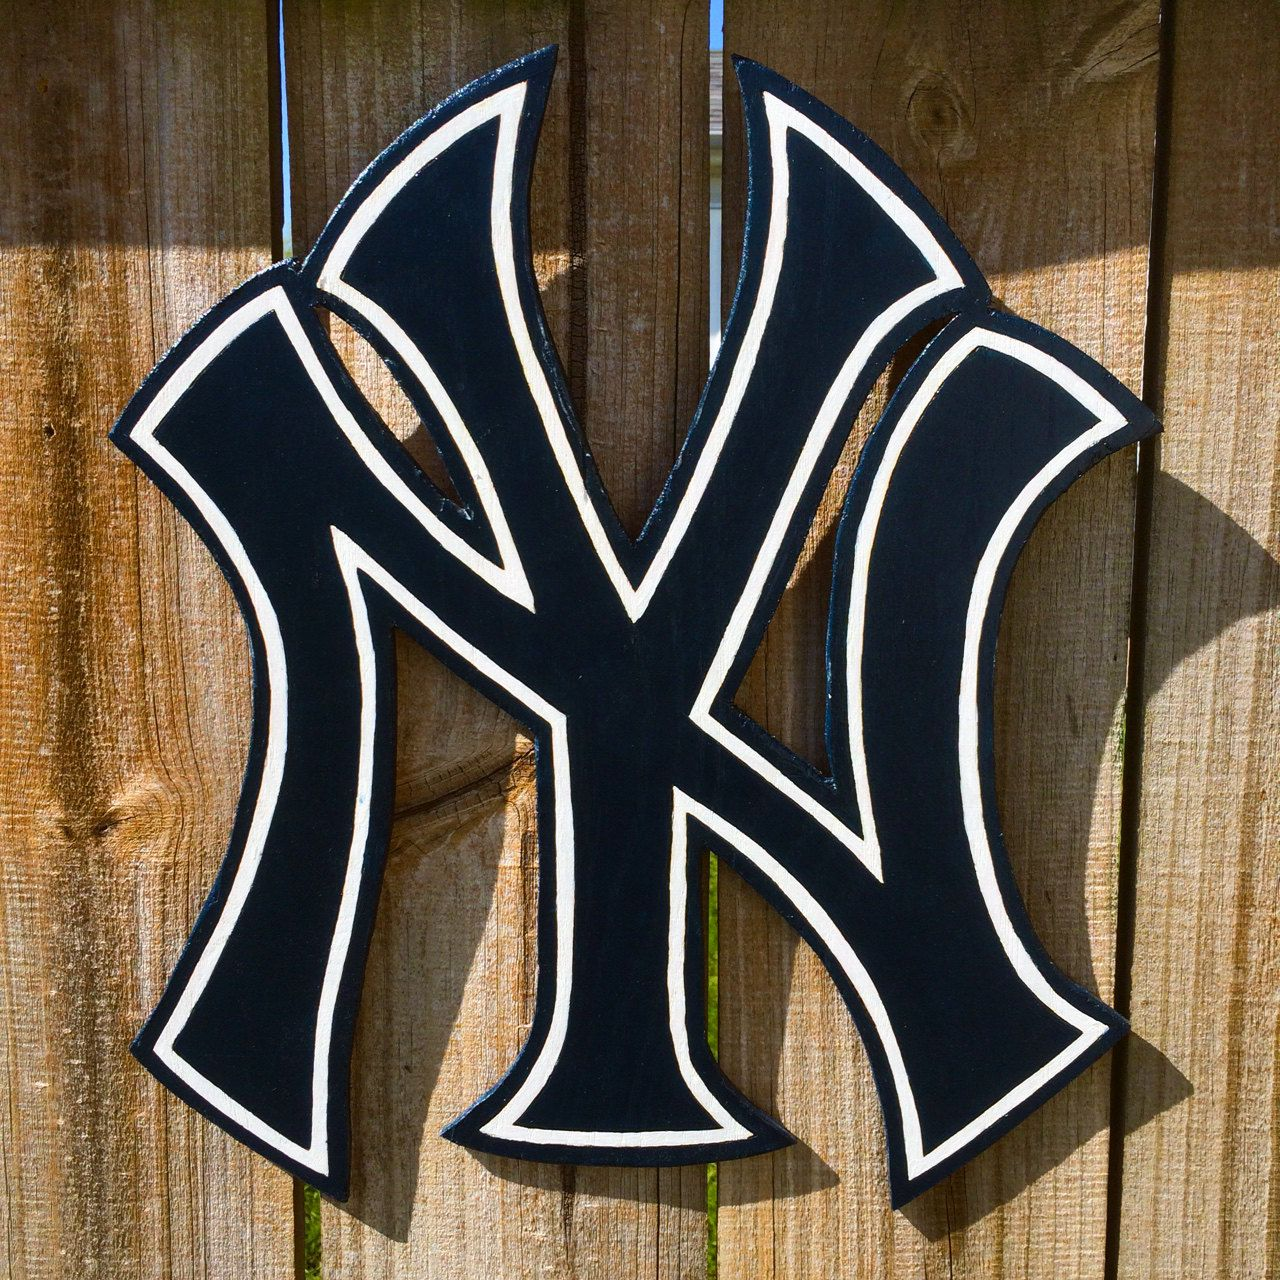 New York Yankees Wooden Wall Hanging Or Spinning Logo Wooden Wall Hangings Wall Hanging Wooden Walls